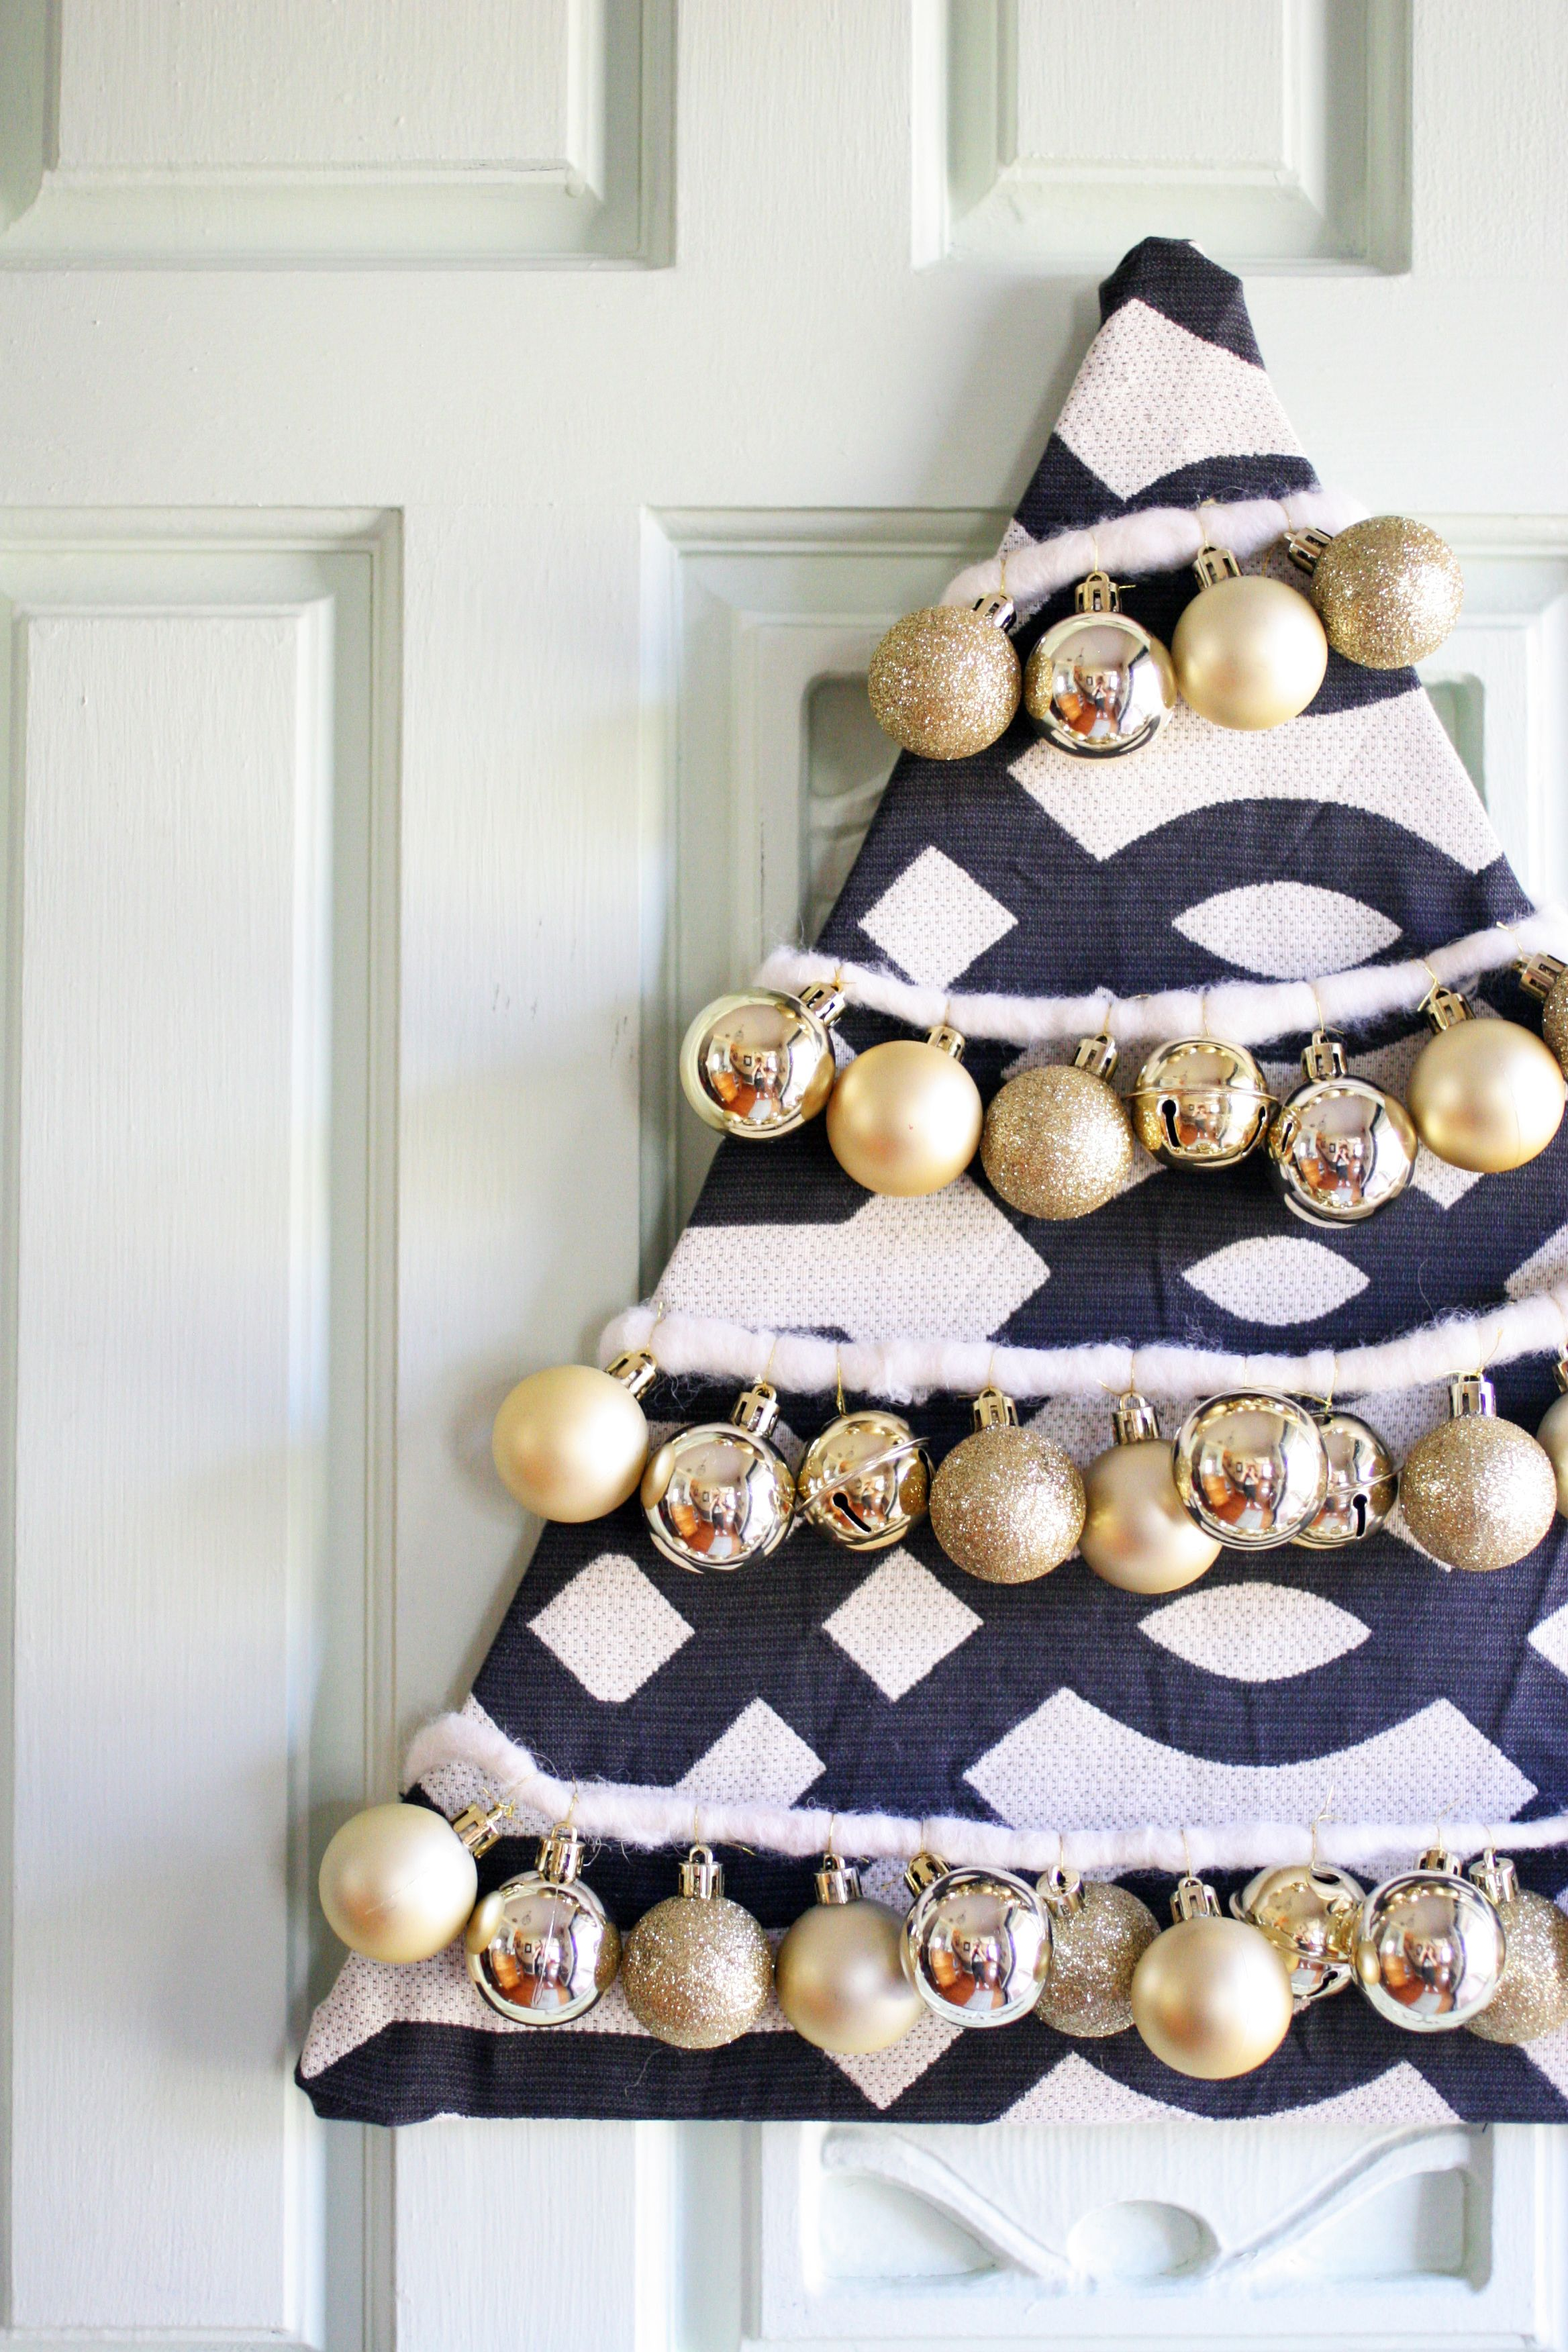 How to make a Beautiful DIY Christmas Tree Wreath | Pinterest ...